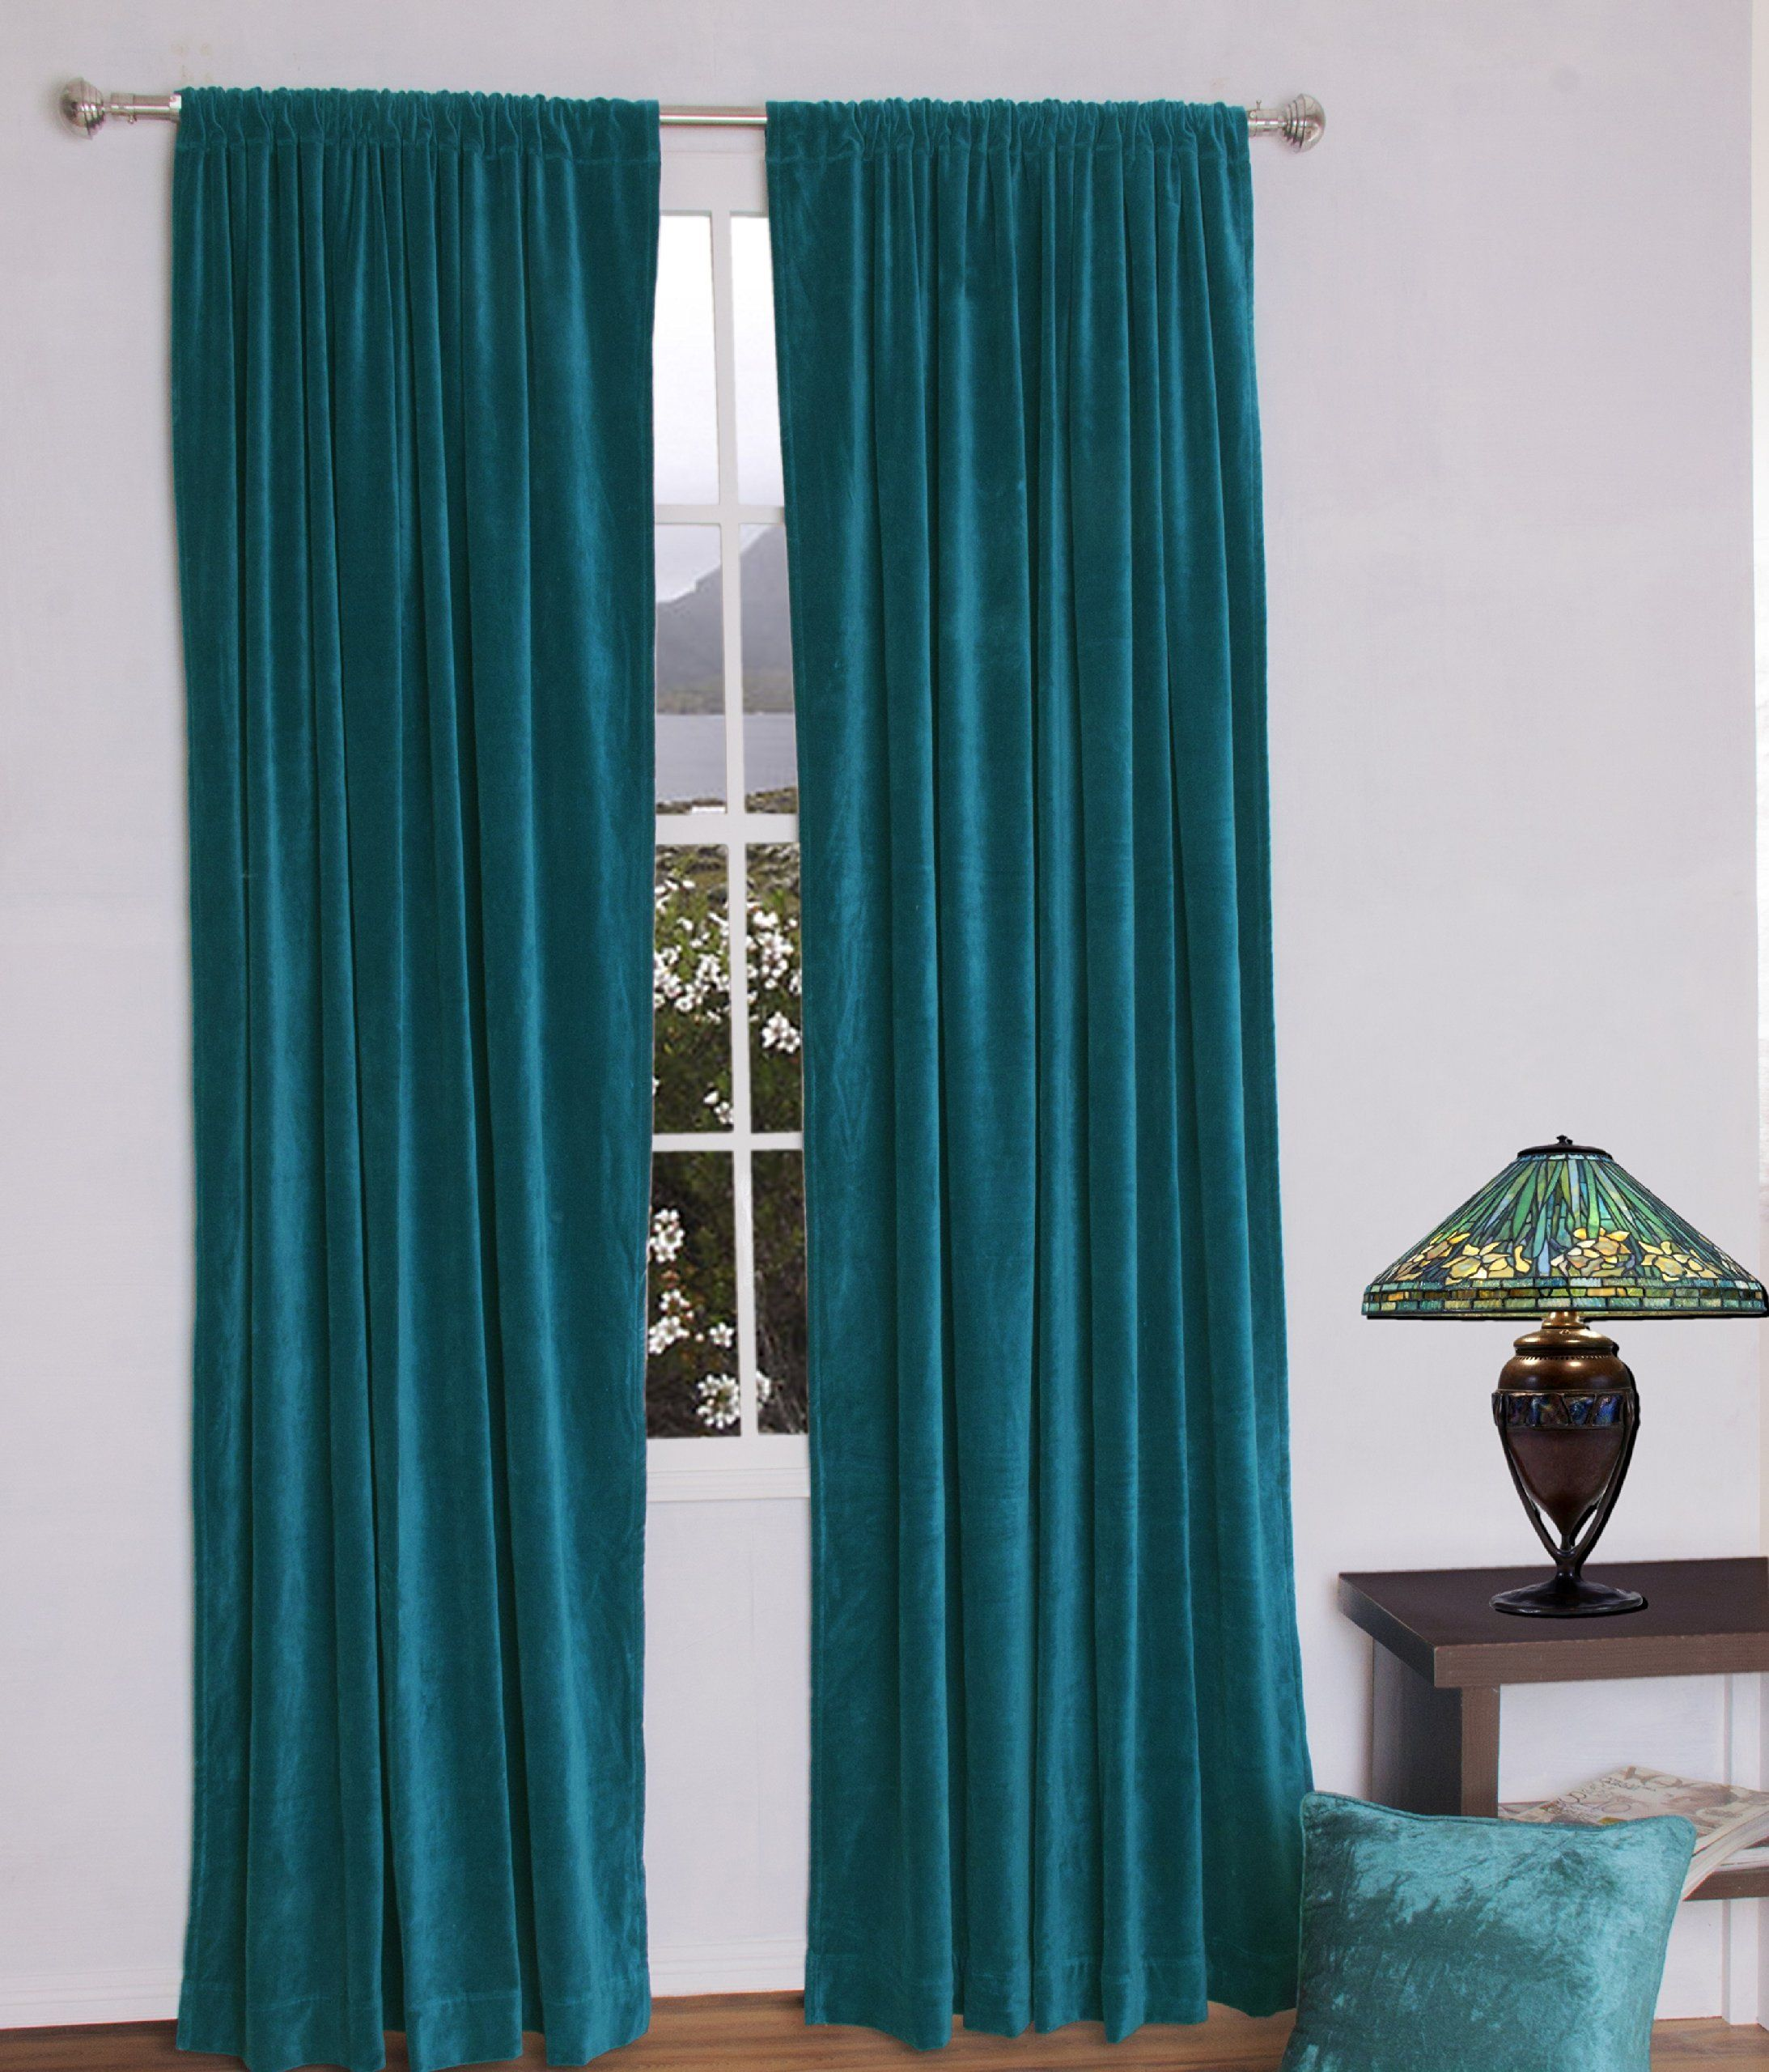 Jovi Home Velvet Window Curtain 5296Inch Teal  Curtains Entrancing Teal Living Room Curtains 2018